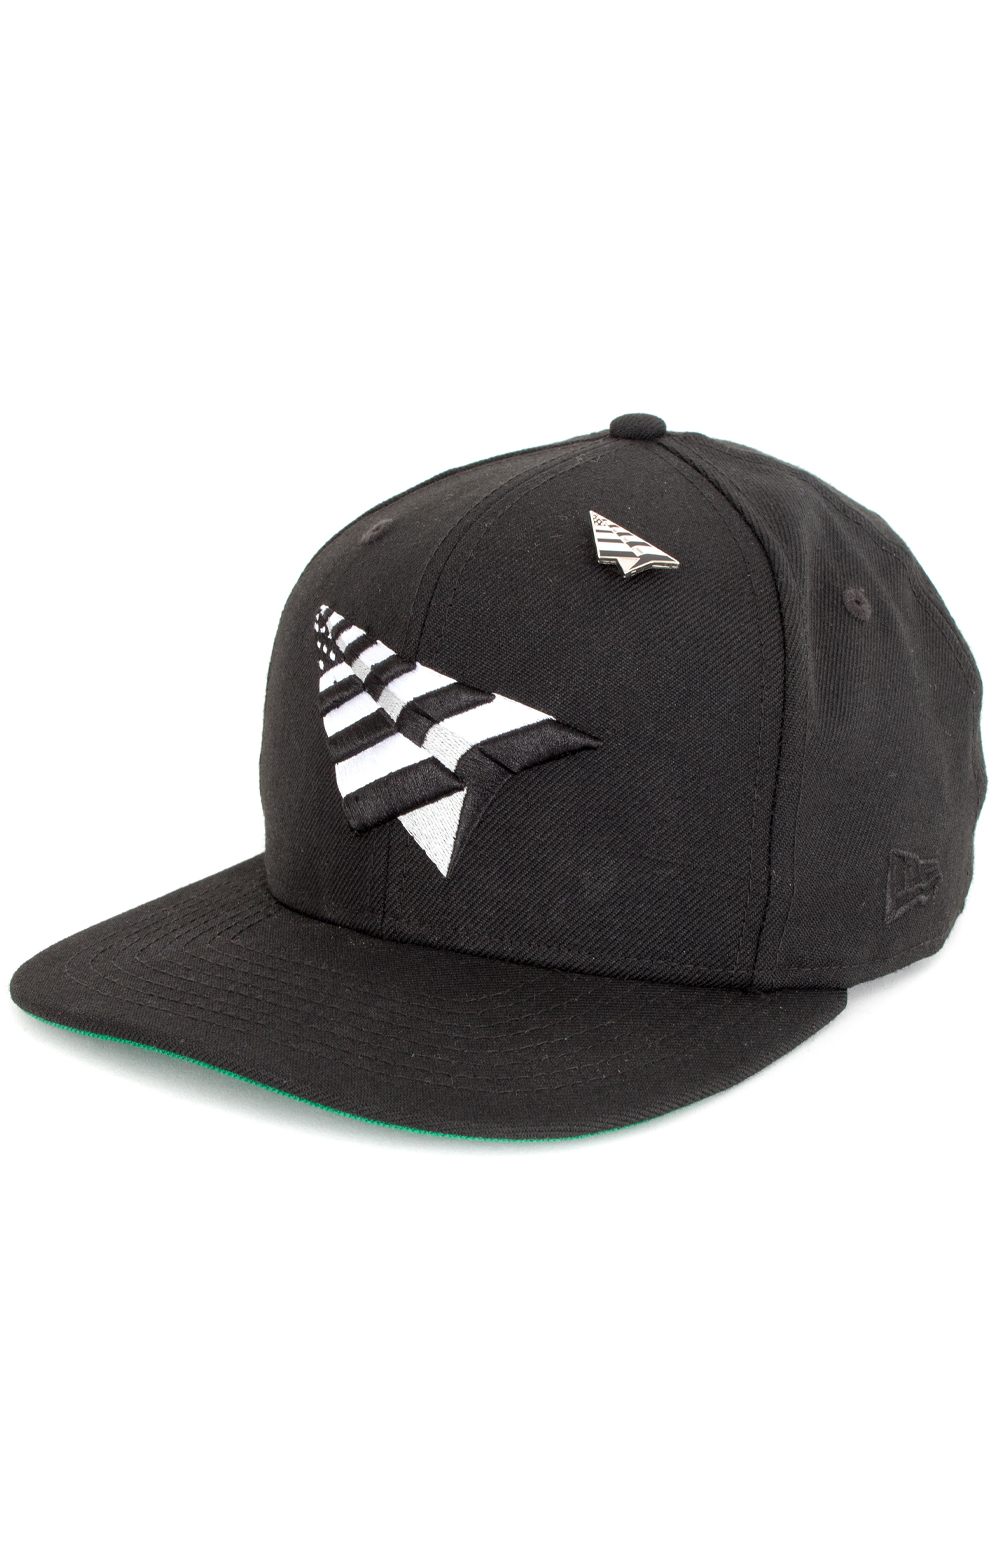 Crown NE Snap-Back Hat - Black/Green